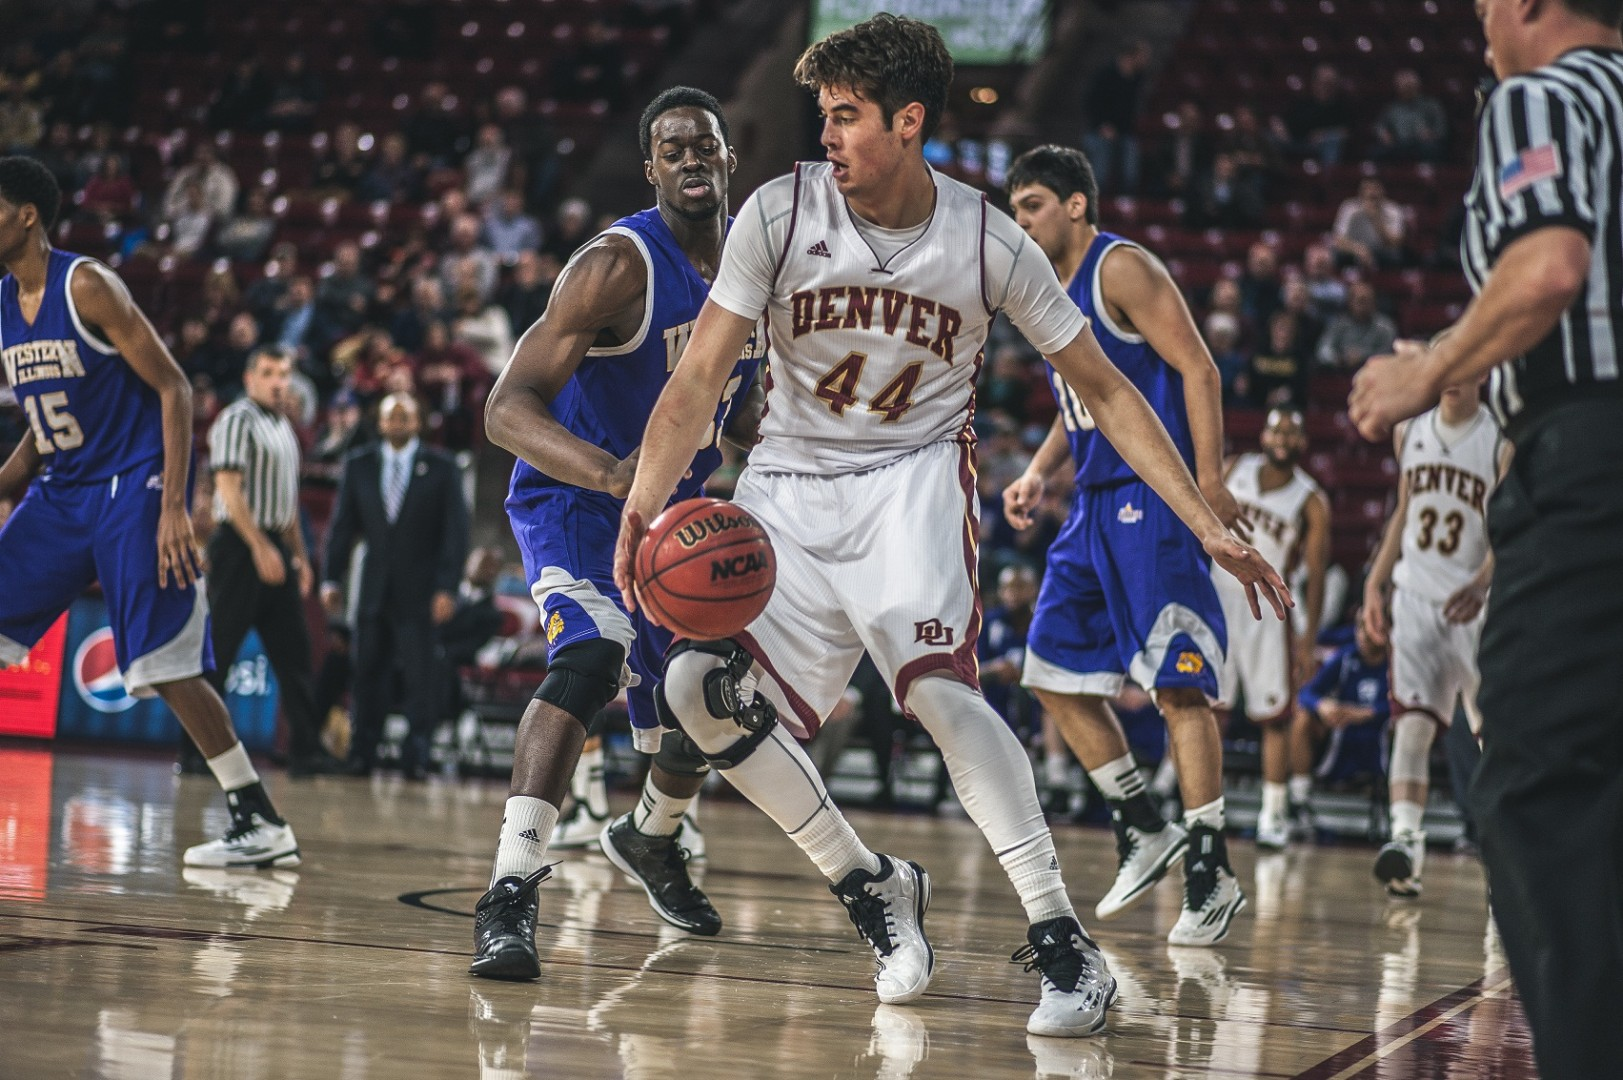 Men's basketball continues skid in Summit League ...